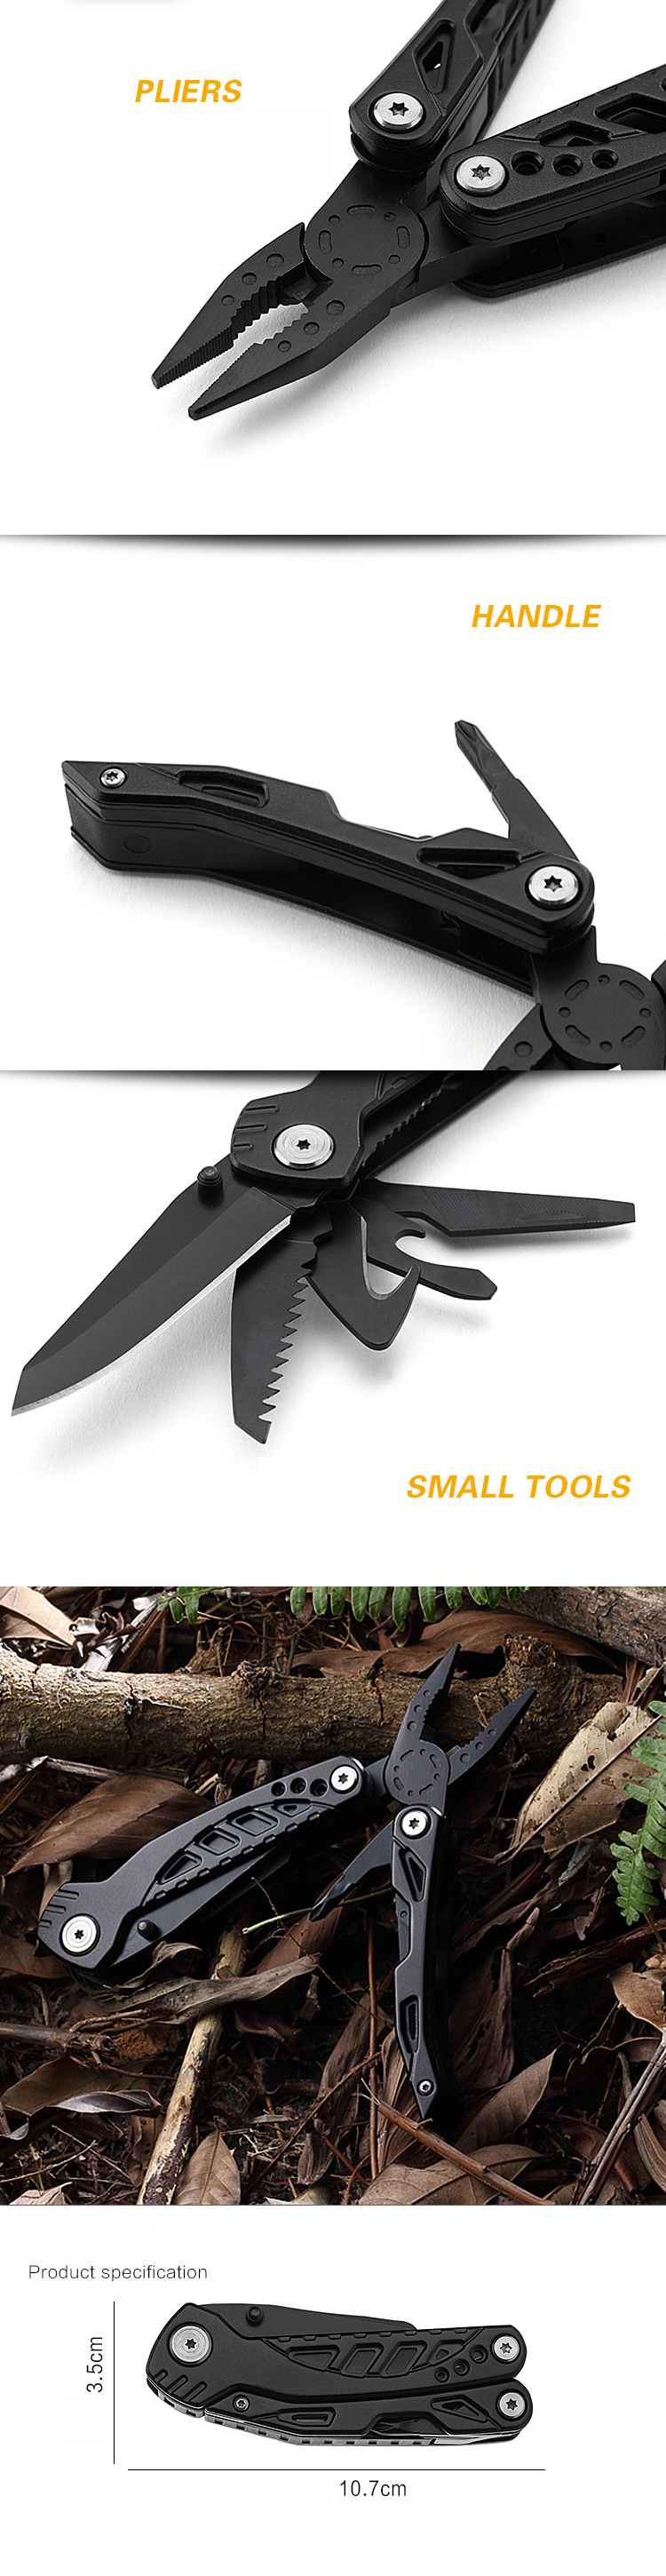 IPRee® 155mm High-carbon Steel Multi-function Folding Knife Portable Tool Pliers EDC Survival Tools